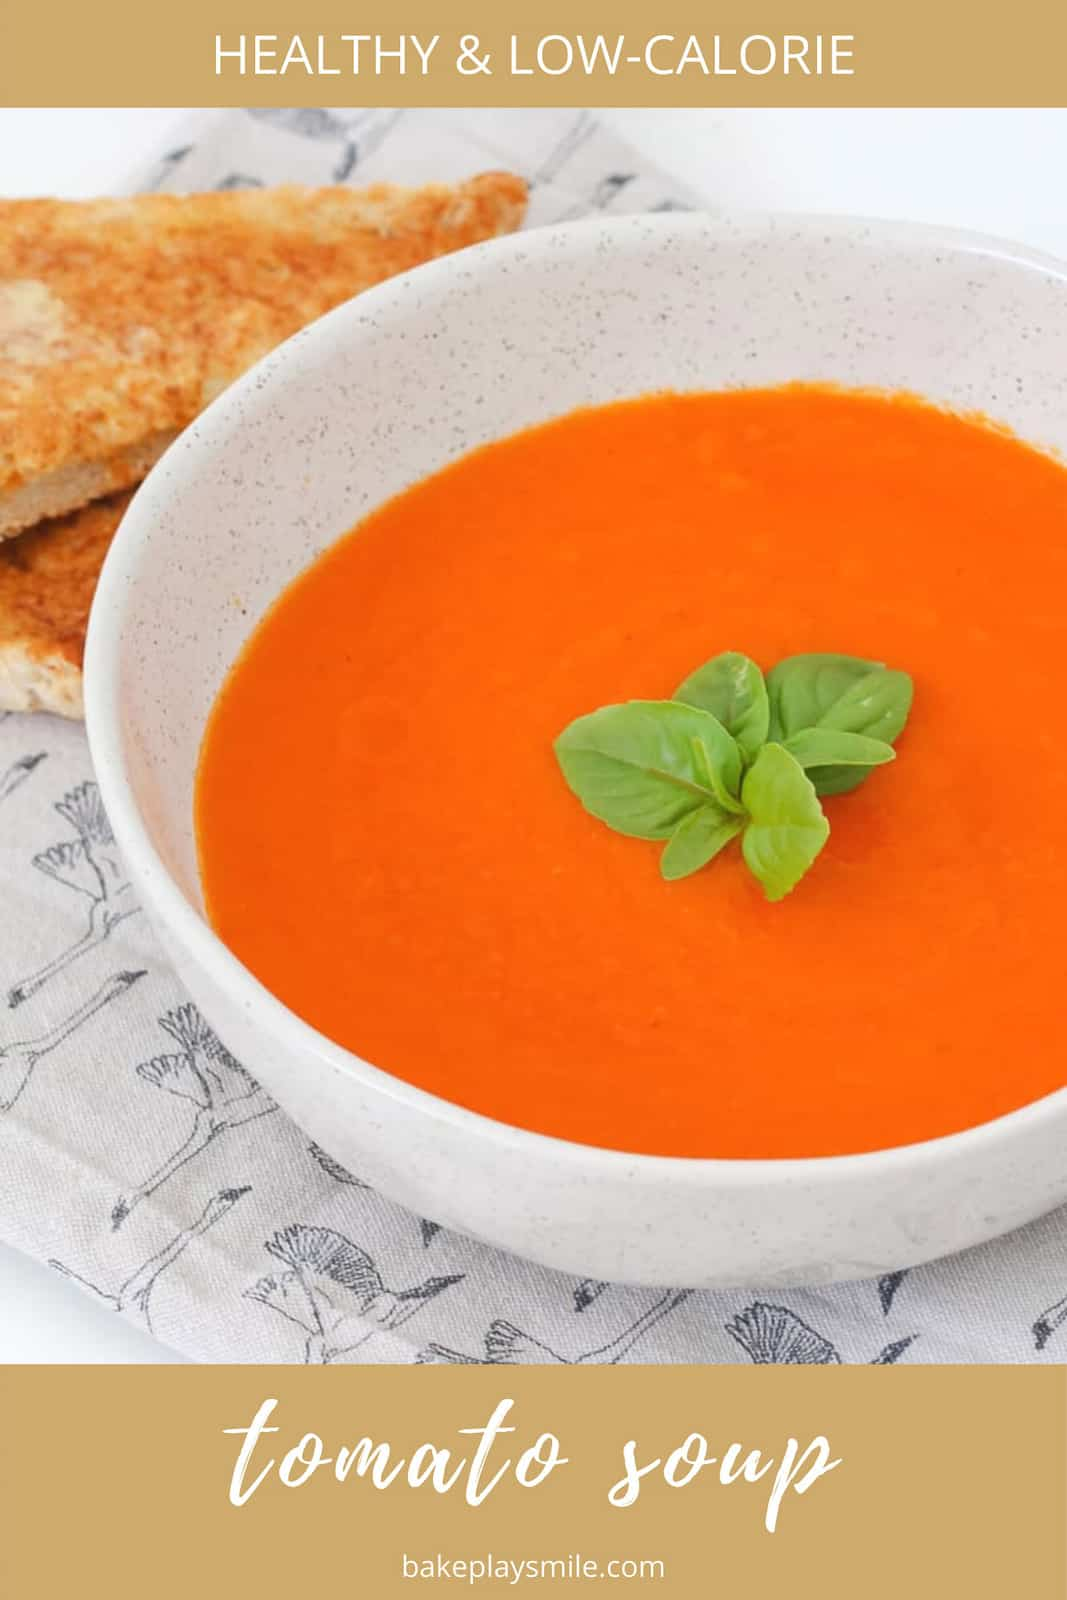 A bowl of pureed red vegetable soup with basil.